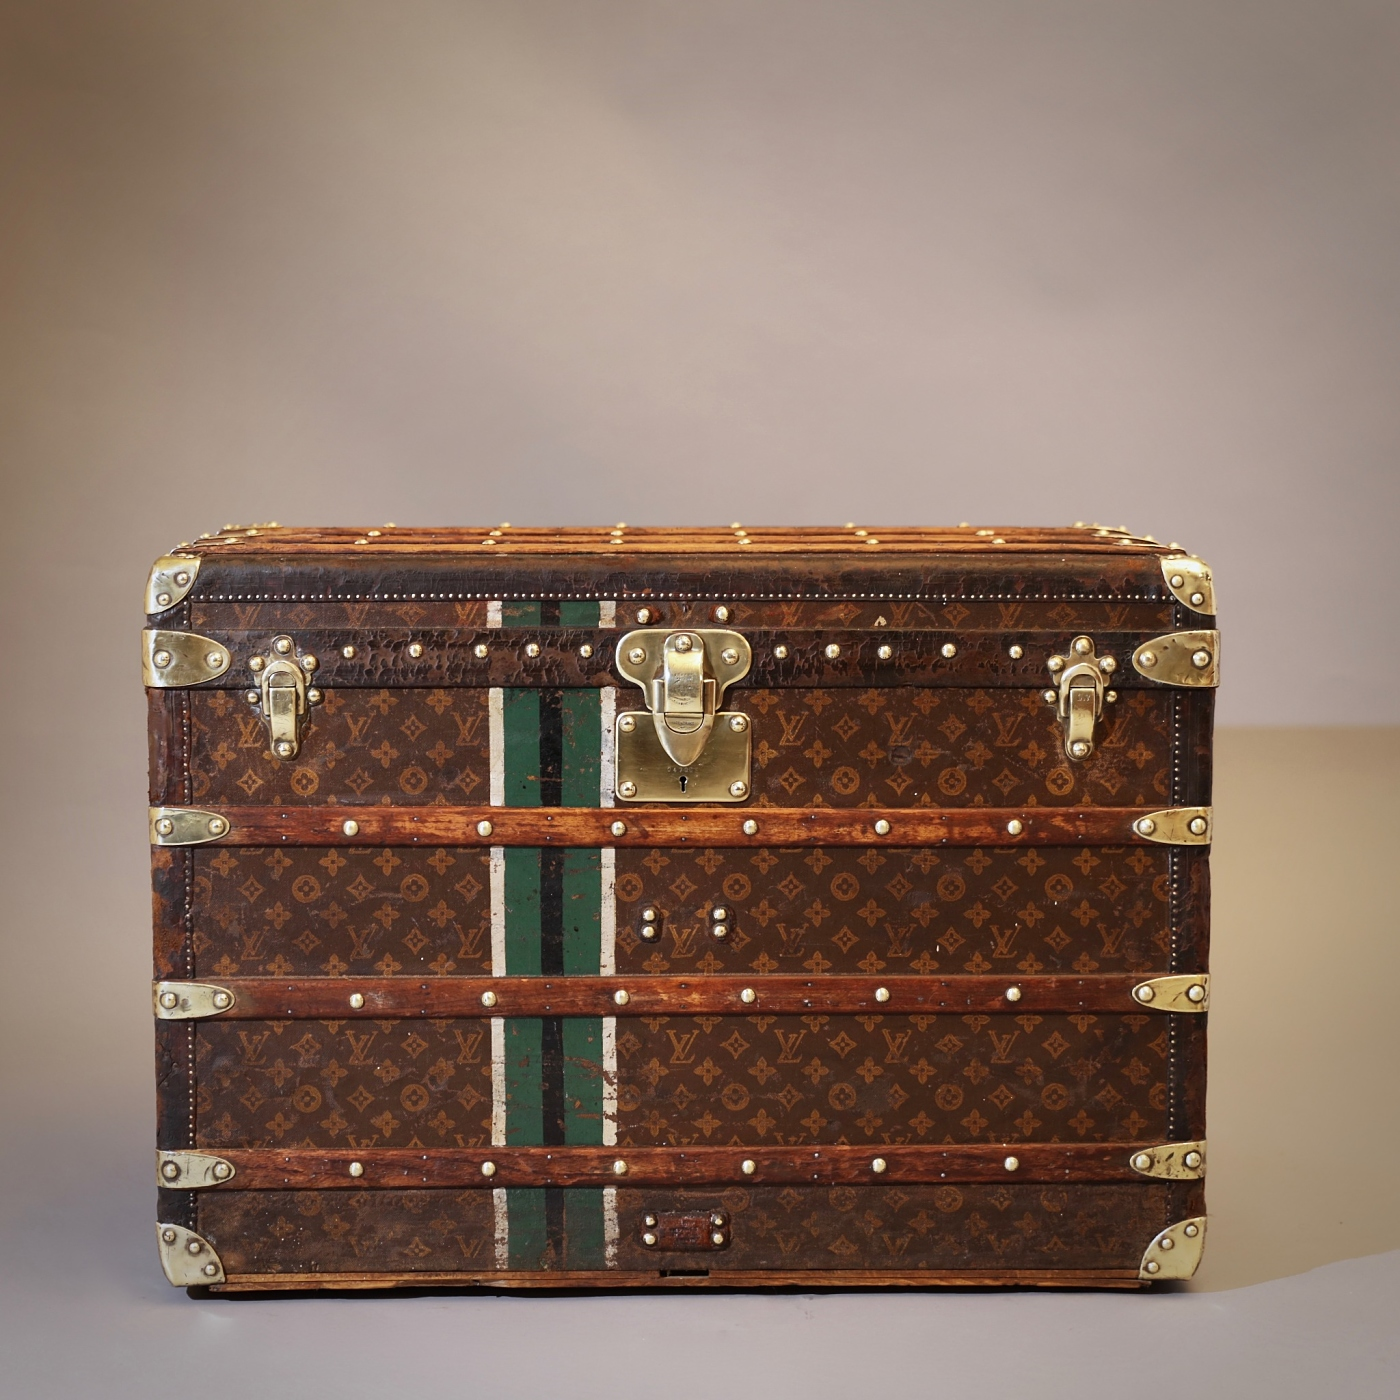 the-well-traveled-trunk-louis-vuitton-thumbnail-product-5695